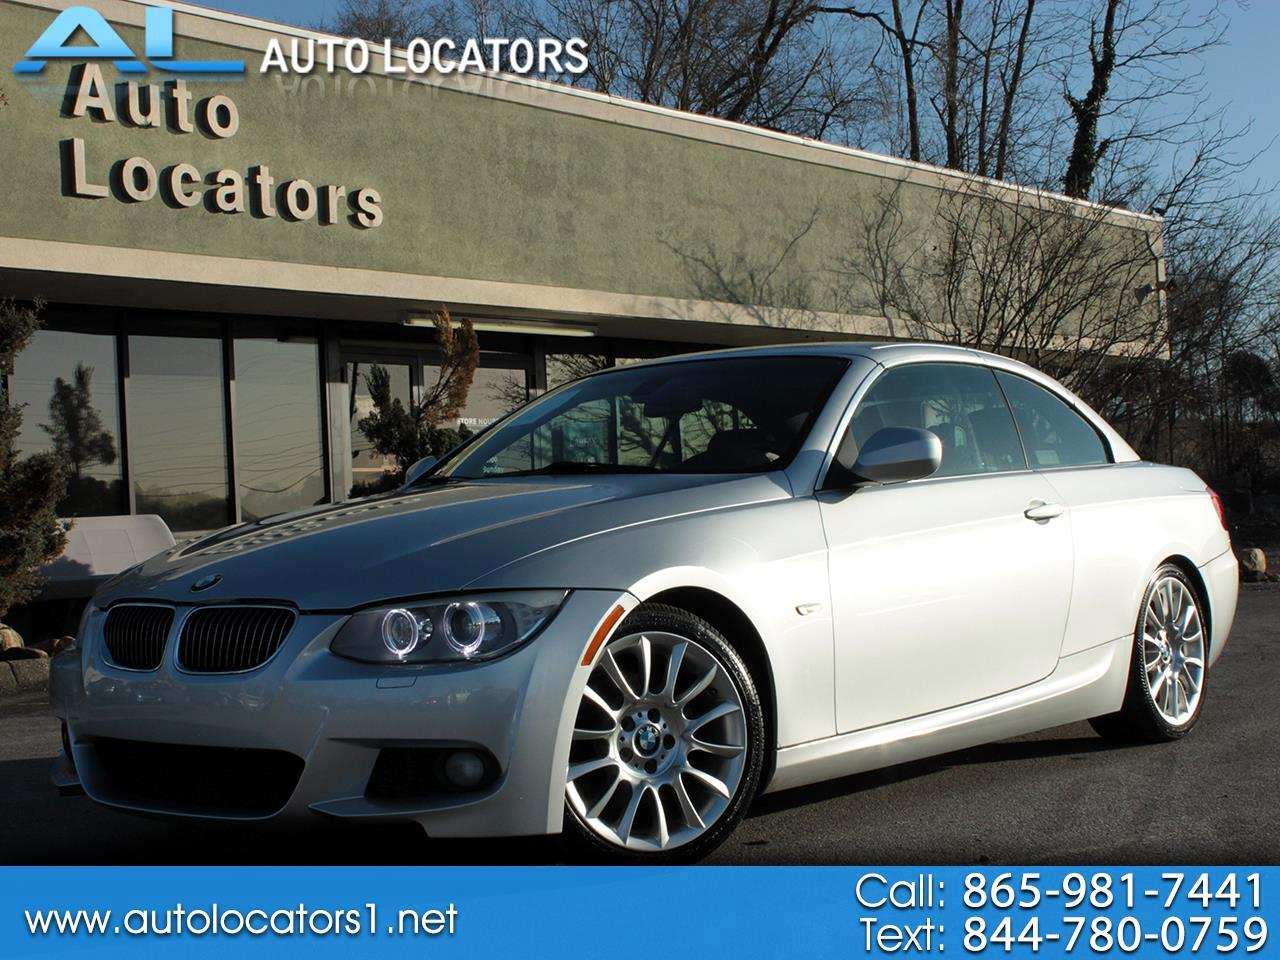 BMW 3 Series 2dr Conv 328i 2013